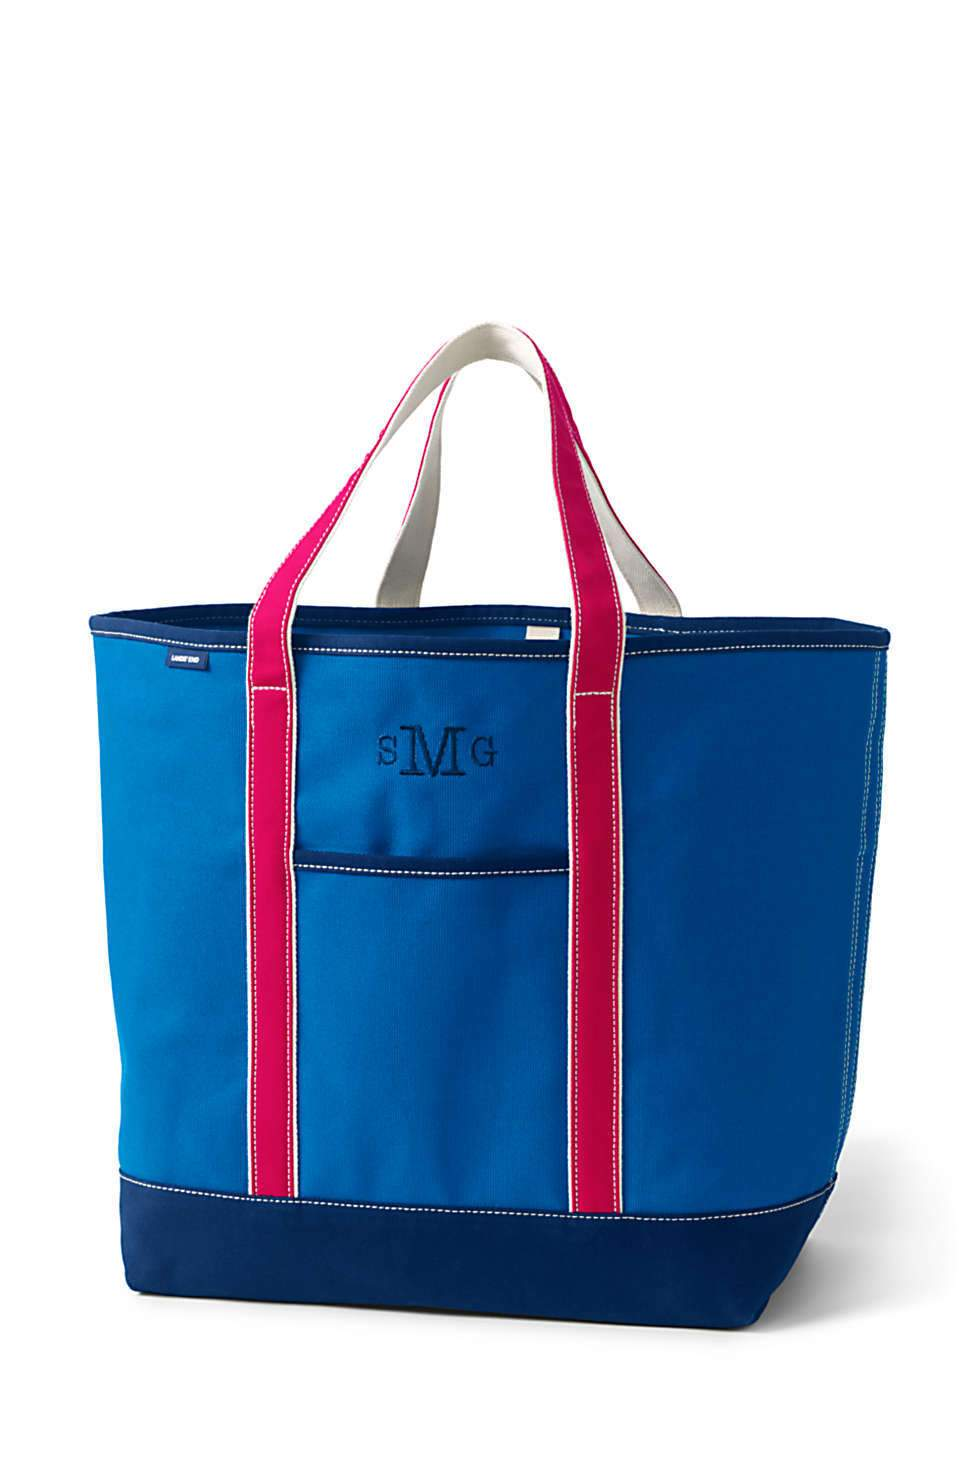 Lands' End Coupon: 50% Off Regular & Sale: Extra Large Open Top Canvas Tote Bag